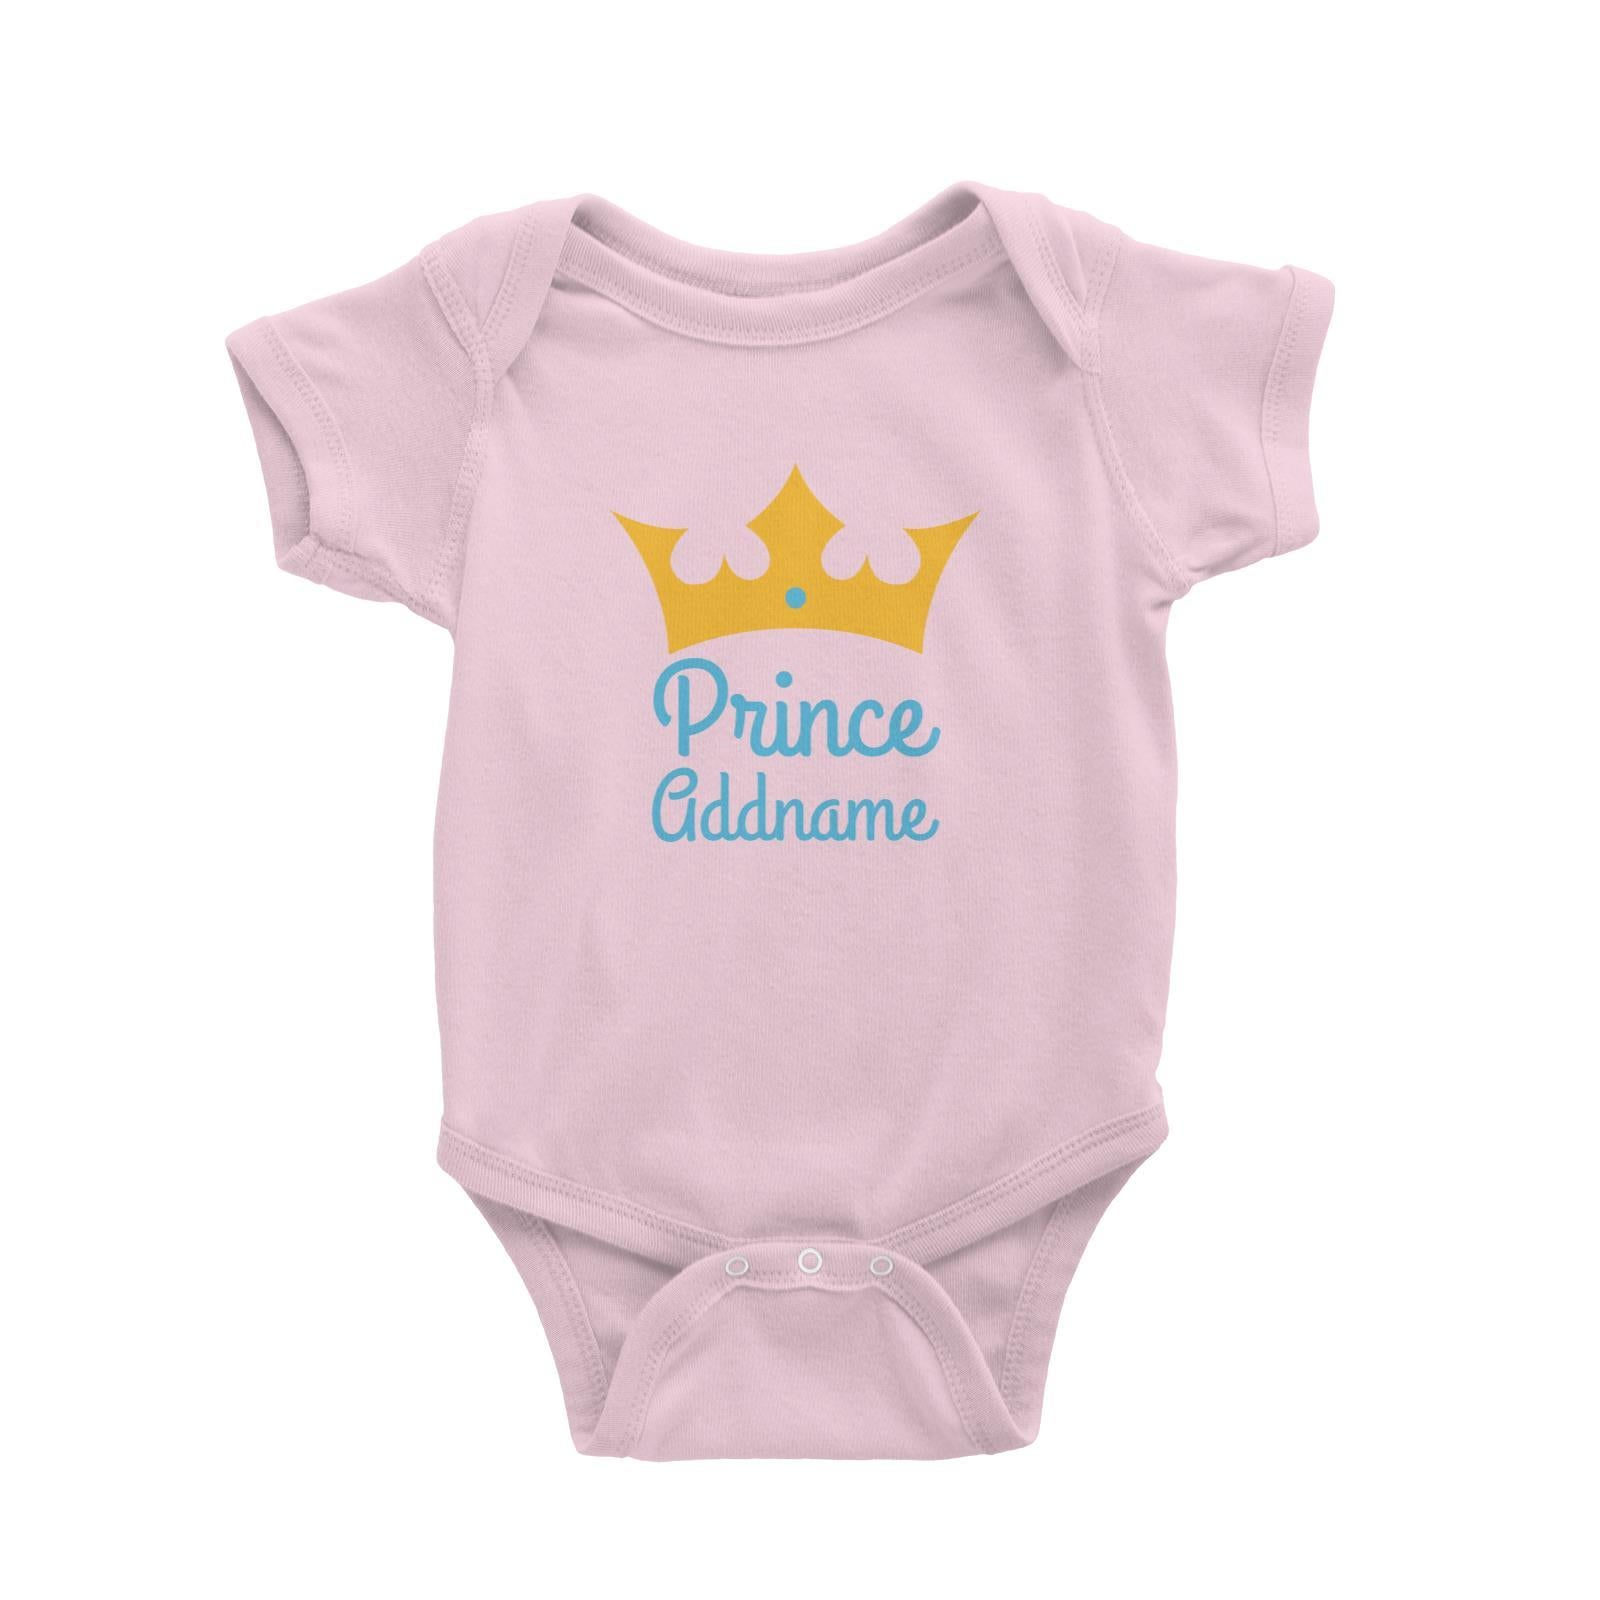 Babywears.my Blue Prince Addname with Crown T-Shirt  For Boys Personalizable Designs